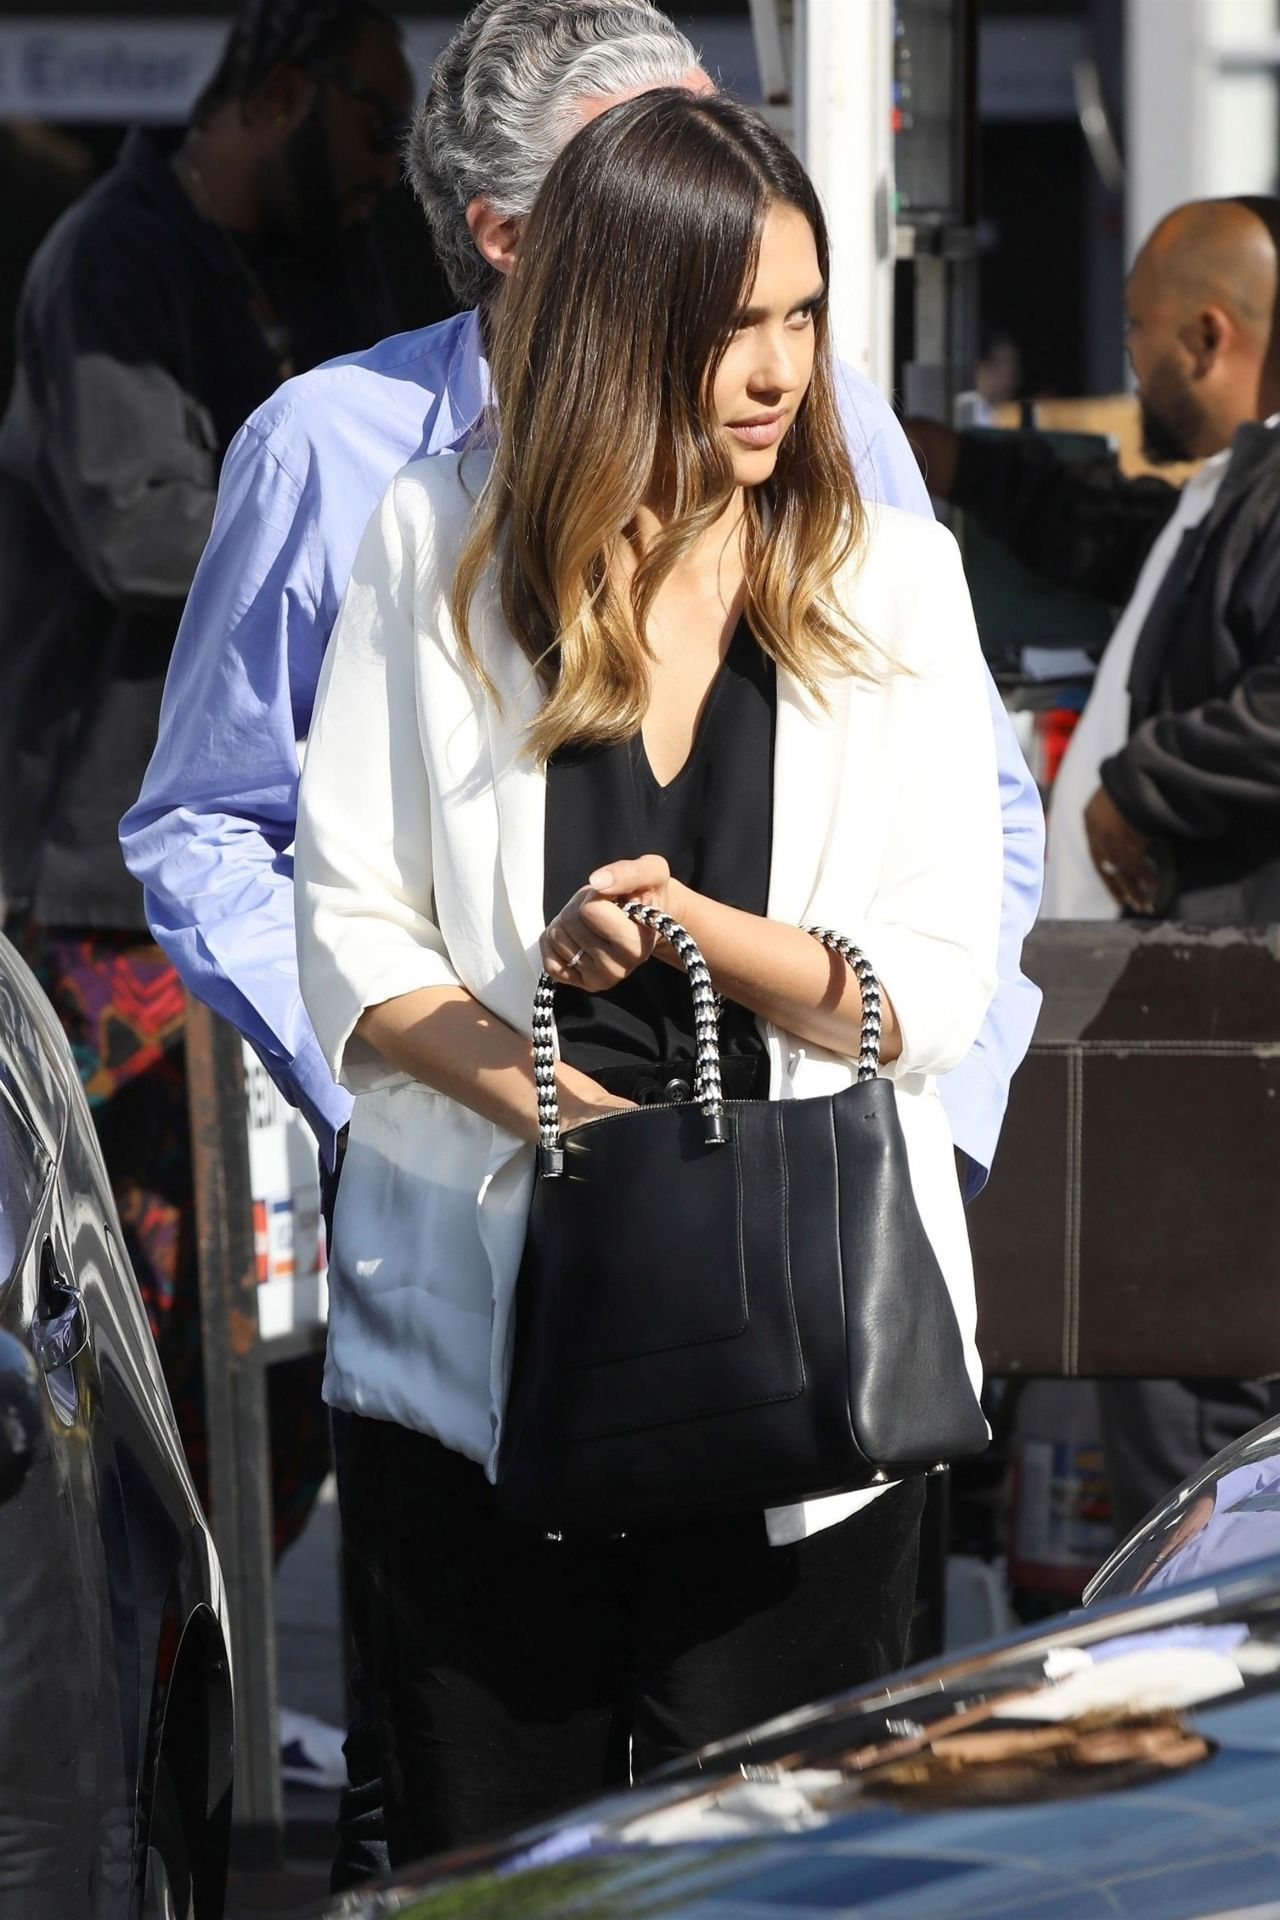 https://i0.wp.com/celebmafia.com/wp-content/uploads/2018/05/jessica-alba-heading-to-a-business-meeting-in-beverly-hills-05-23-2018-2.jpg